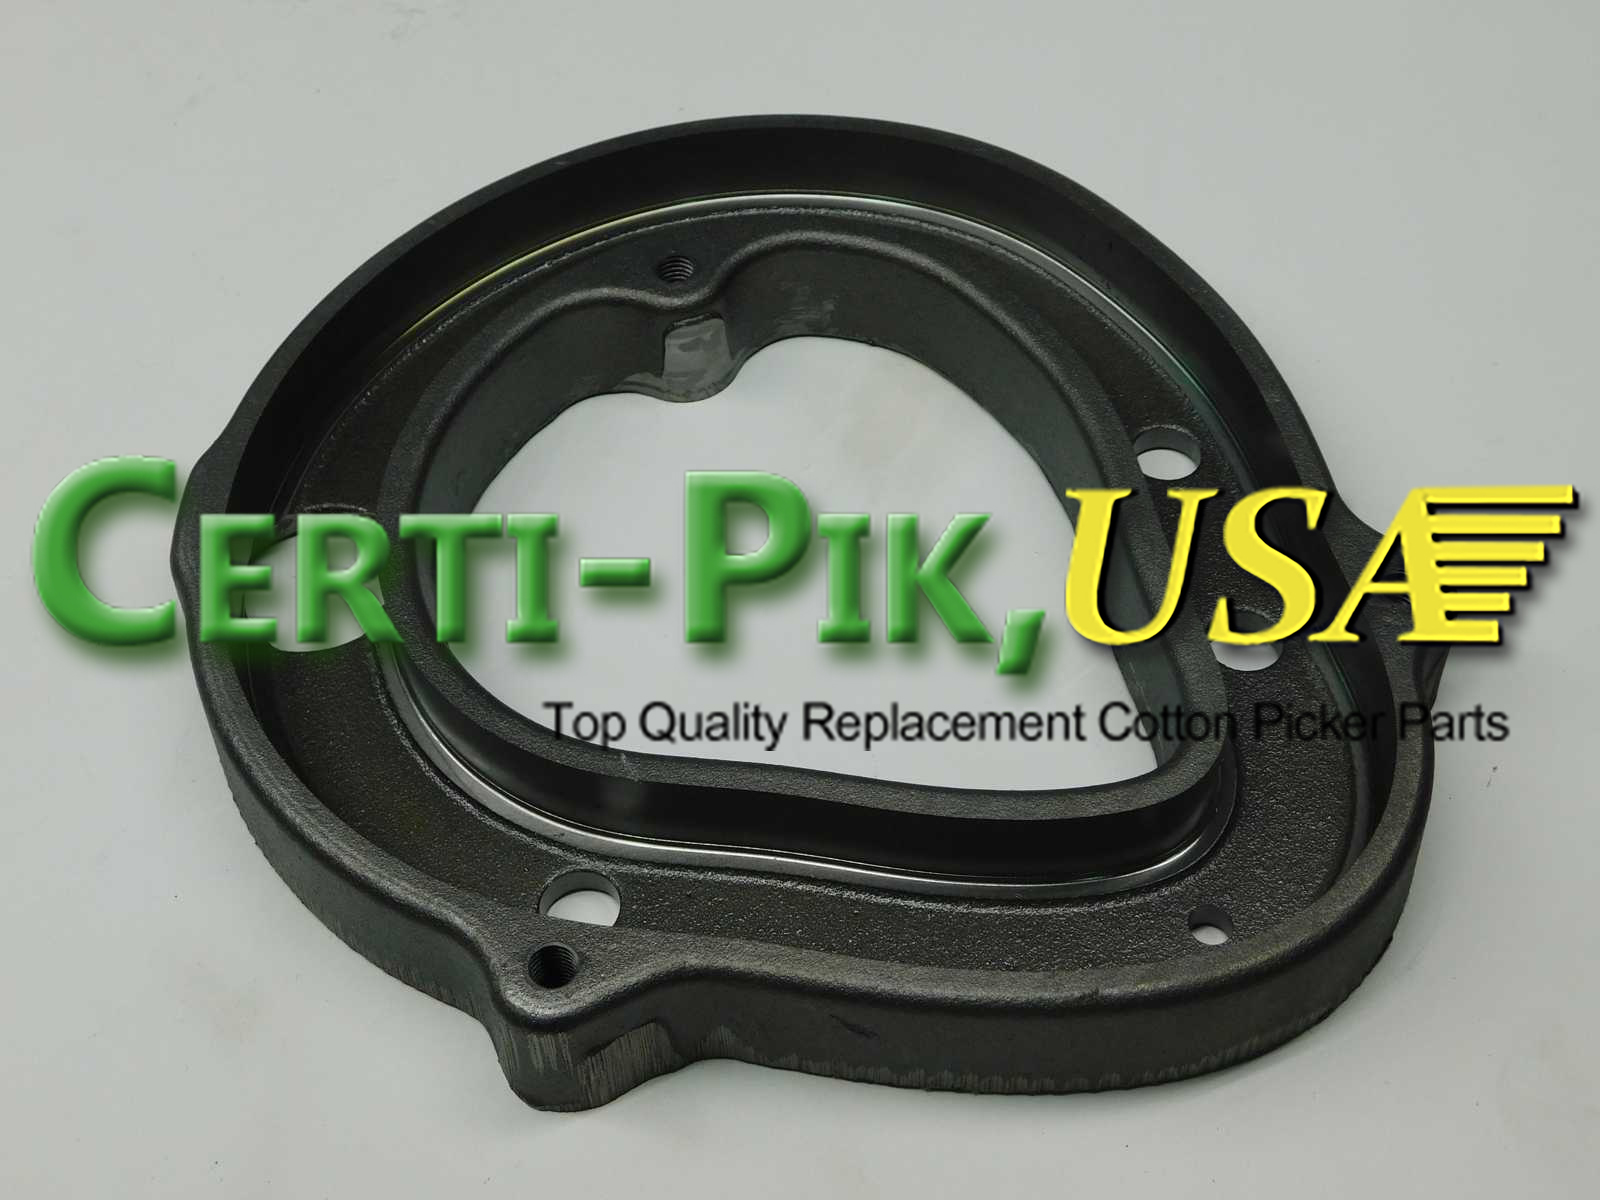 Picking Unit System: John Deere 9900-CP690 Cam Tracks and Drum Head N378789 (78789R) for Sale